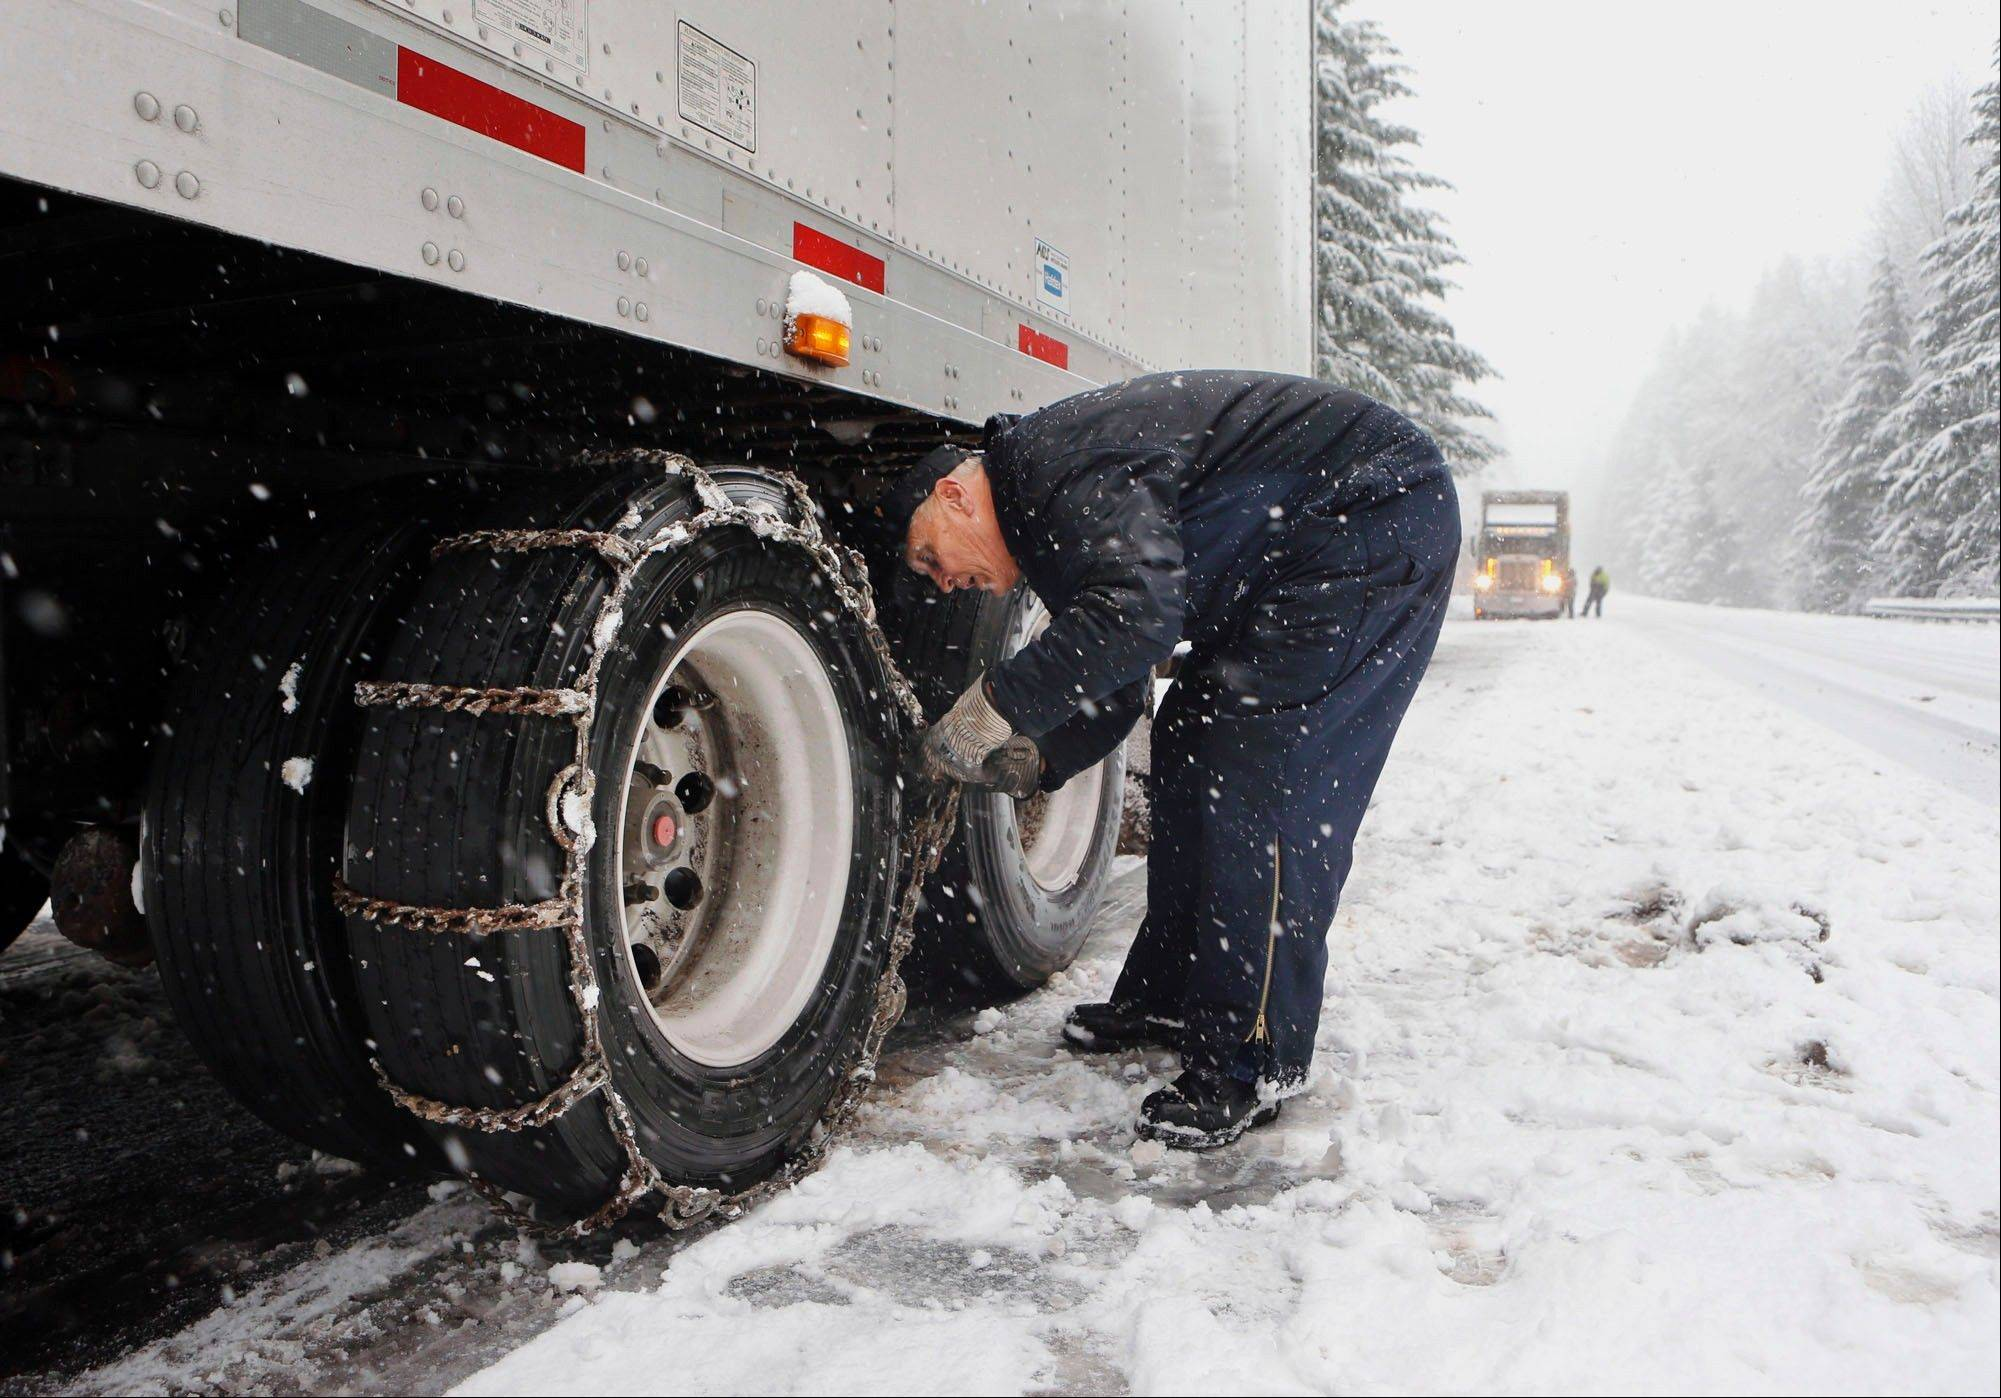 Del Queener of Puyallup, Wash., puts chains on his truck trailer tires as he prepares to drive over Willamette Pass, Ore., during a snow storm Monday.